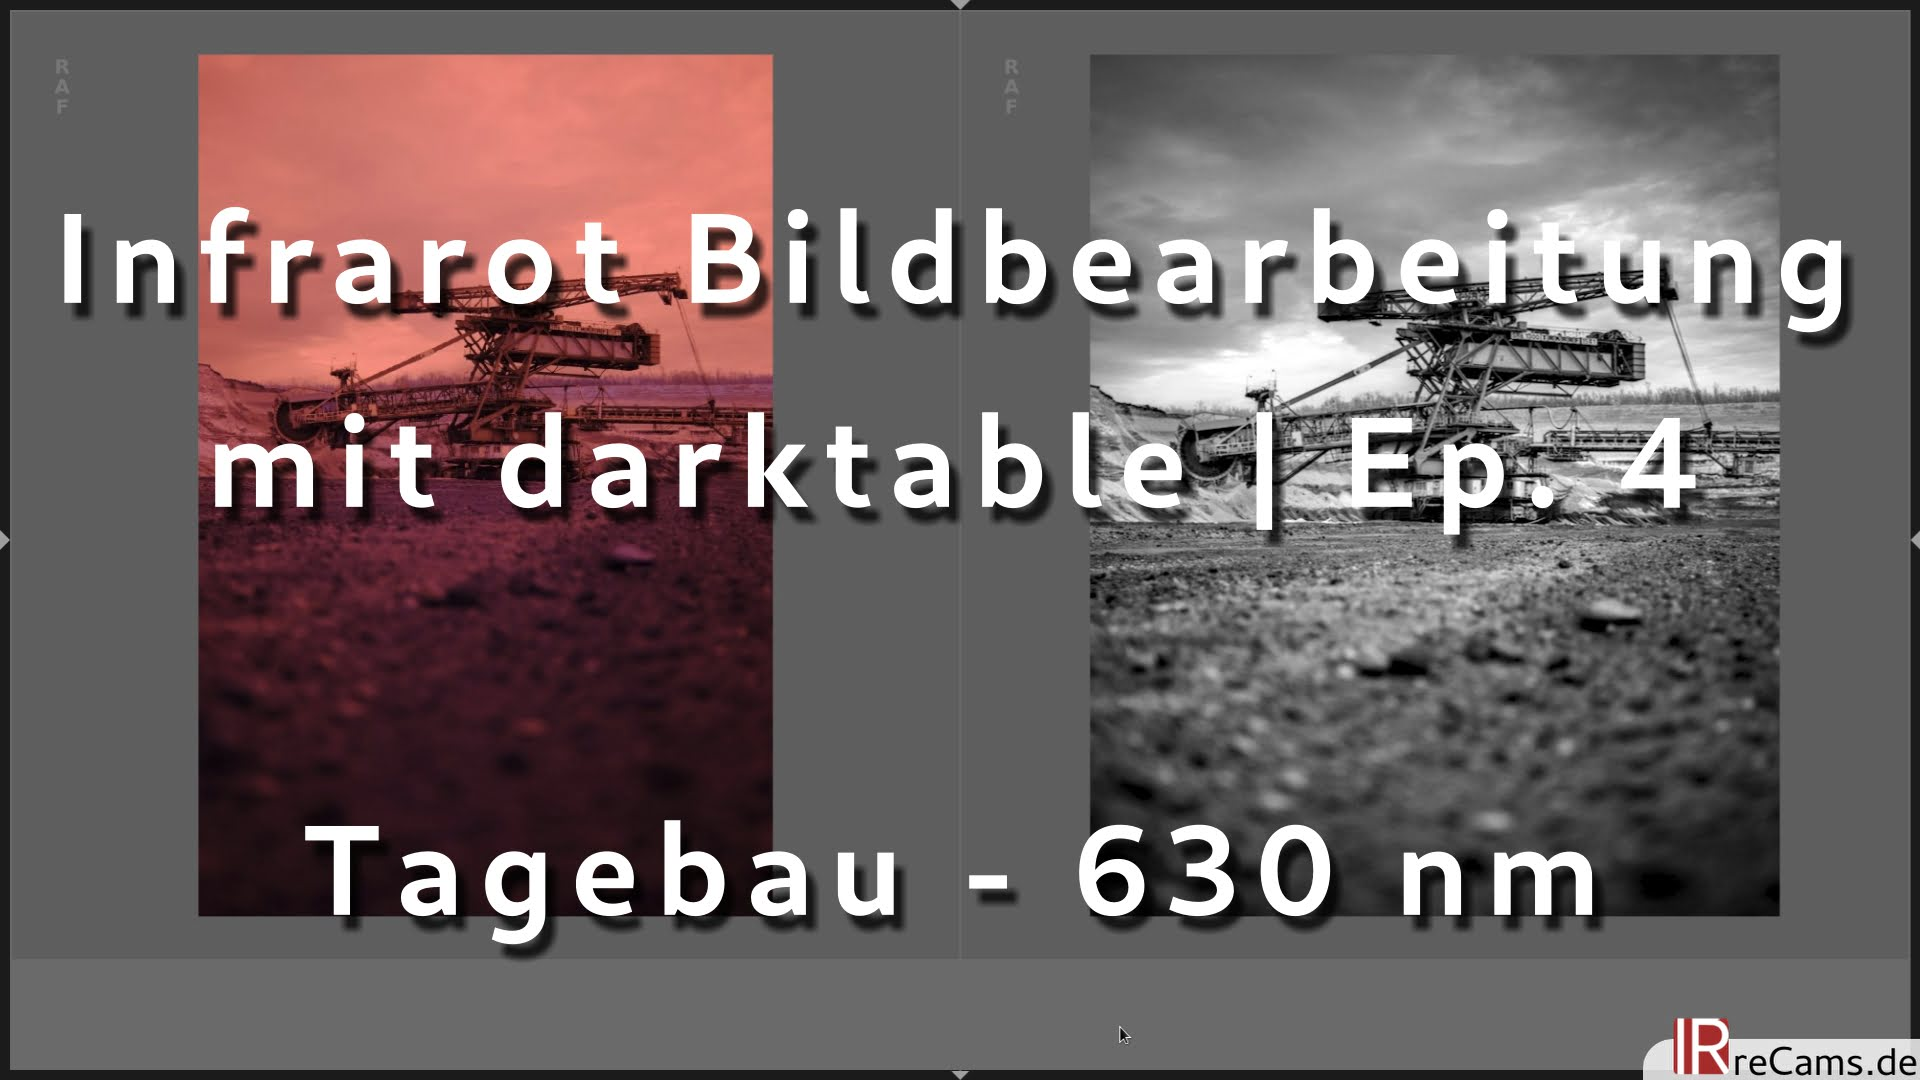 Infrarot Bildbearbeitung in darktable 3.0 | Ep. 4